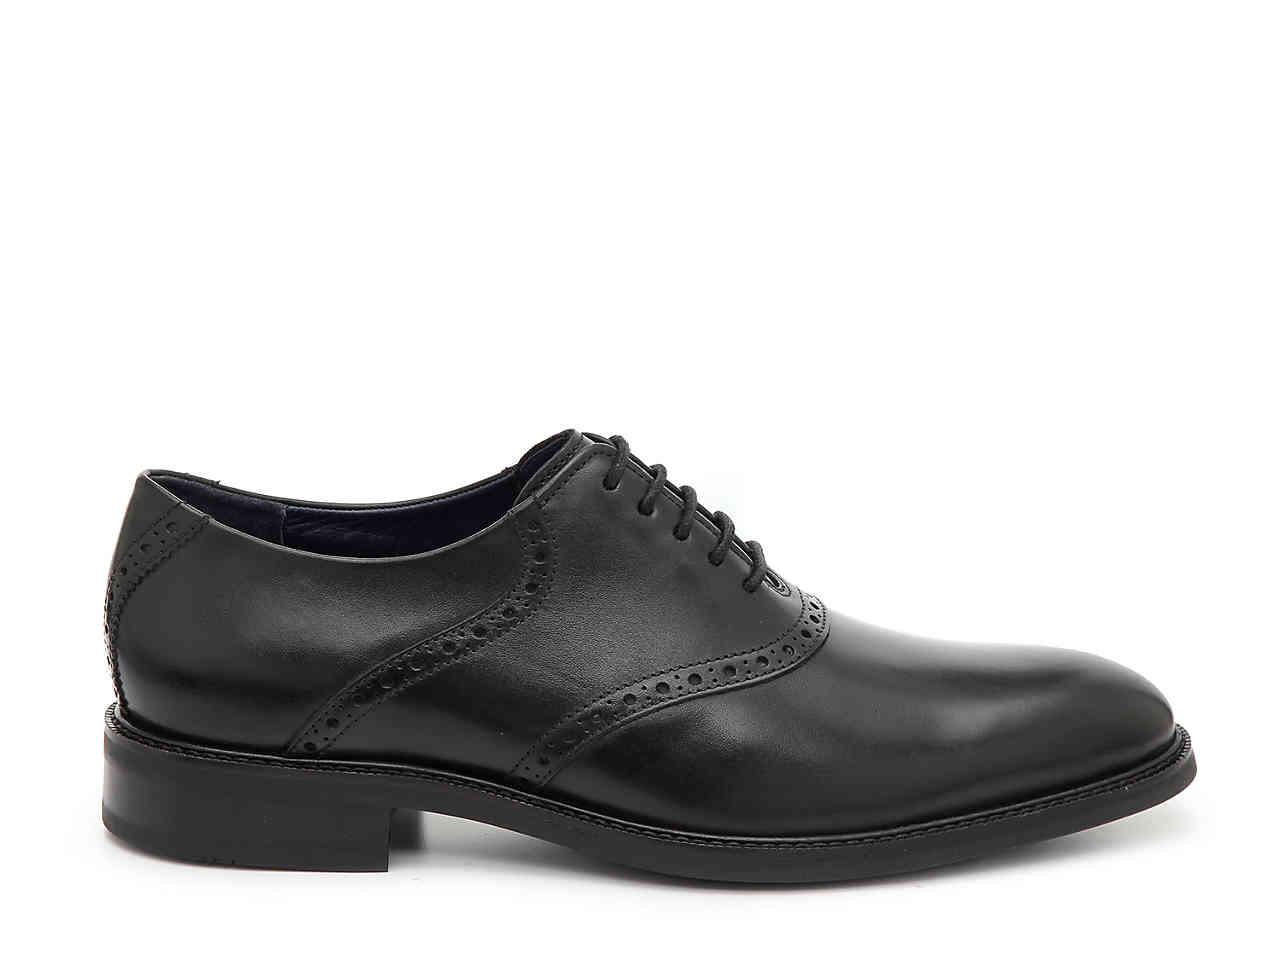 008e0fa3147 Cole Haan Buckland Oxford in Black for Men - Lyst